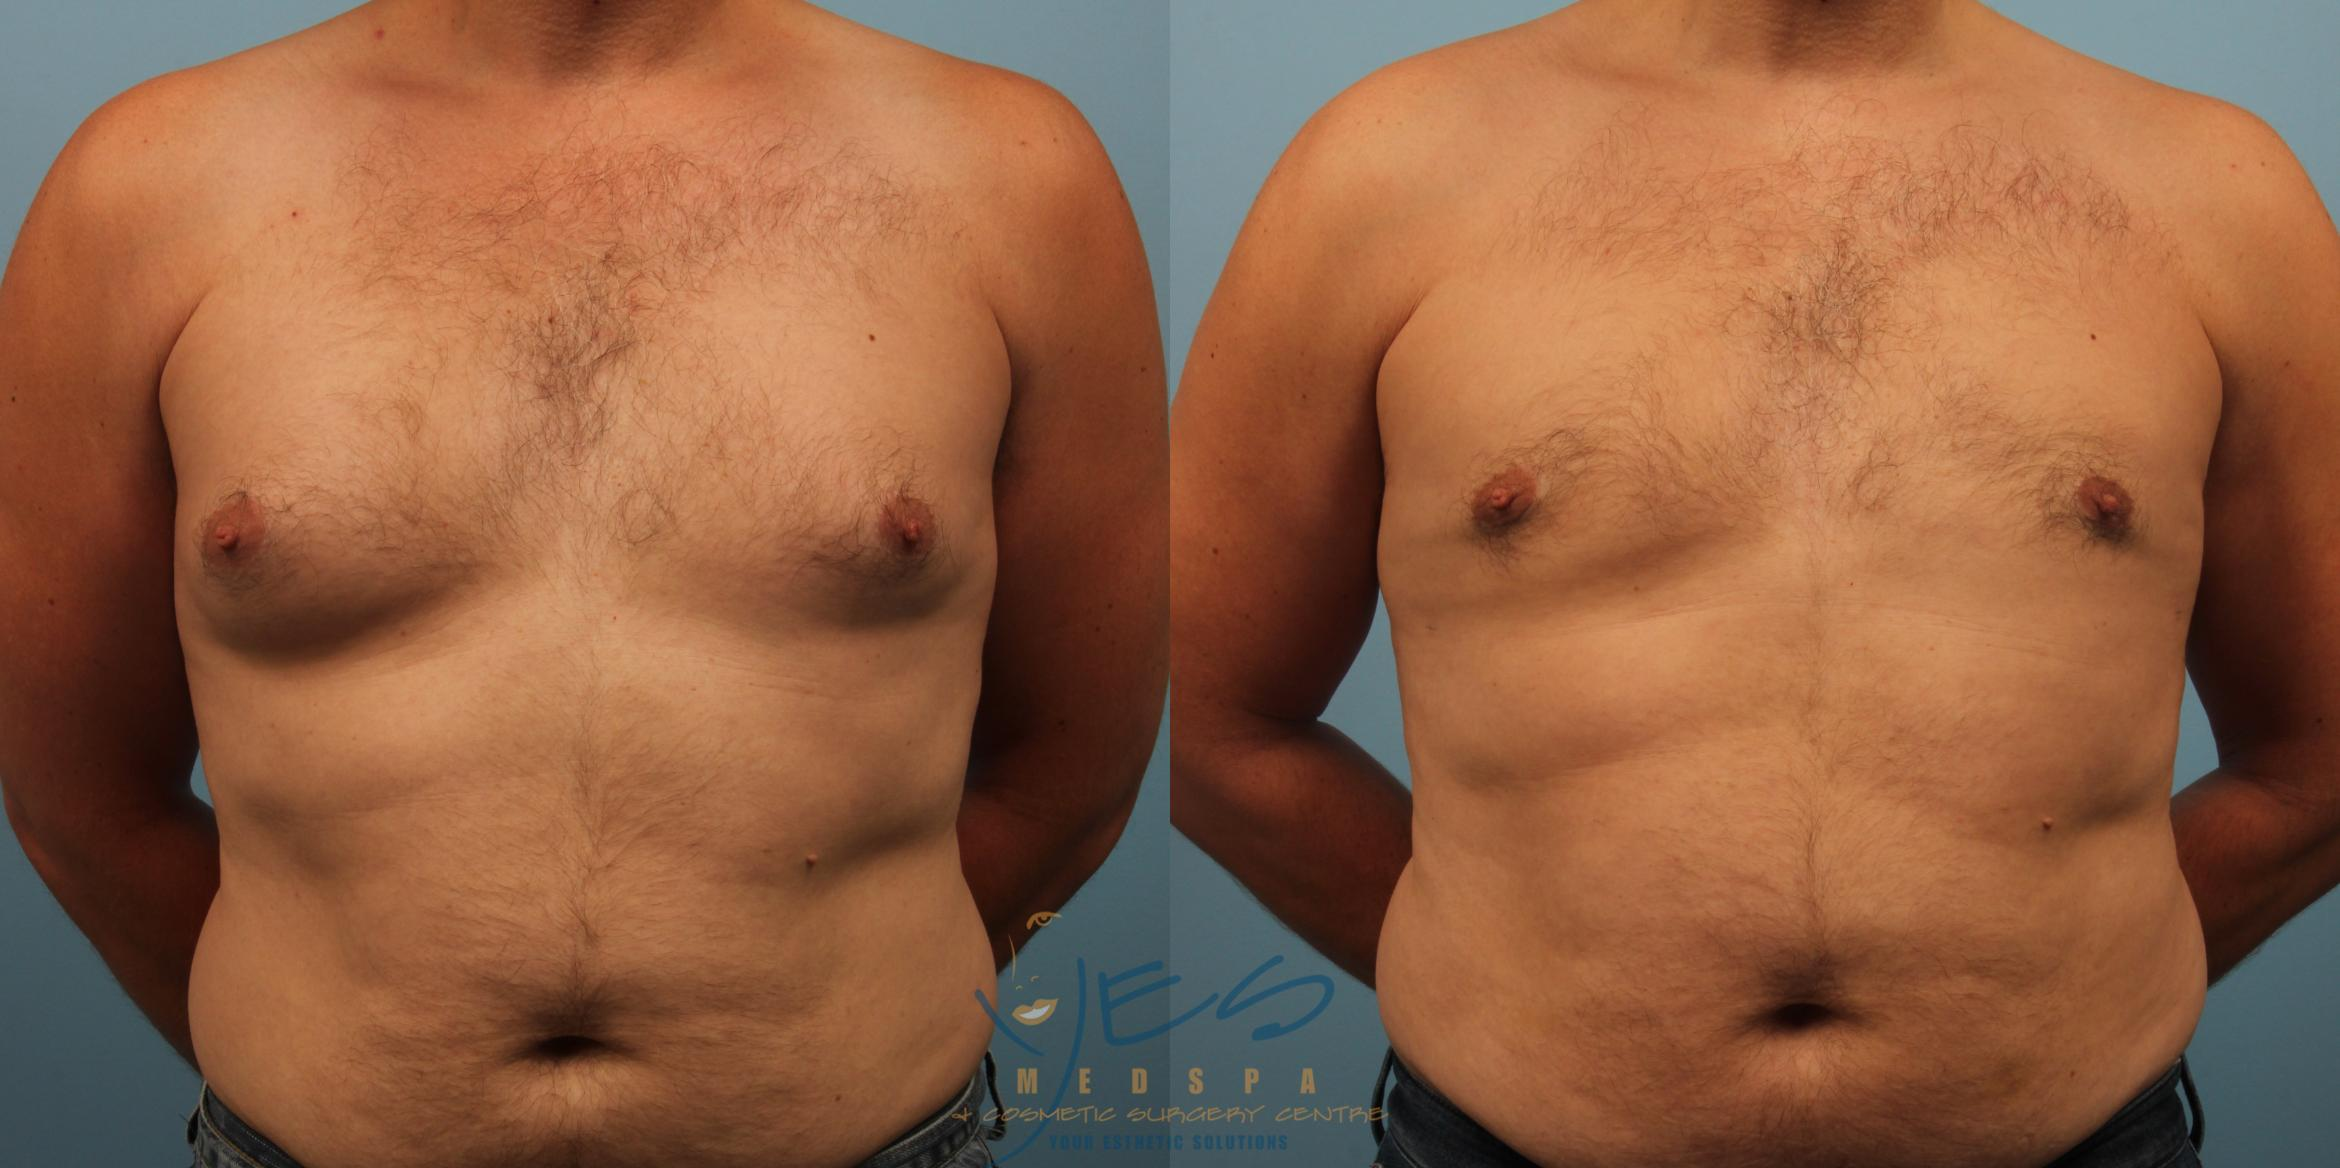 Male Breast Reduction Case 234 Before & After View #1 | Vancouver, BC | YES Medspa & Cosmetic Surgery Centre